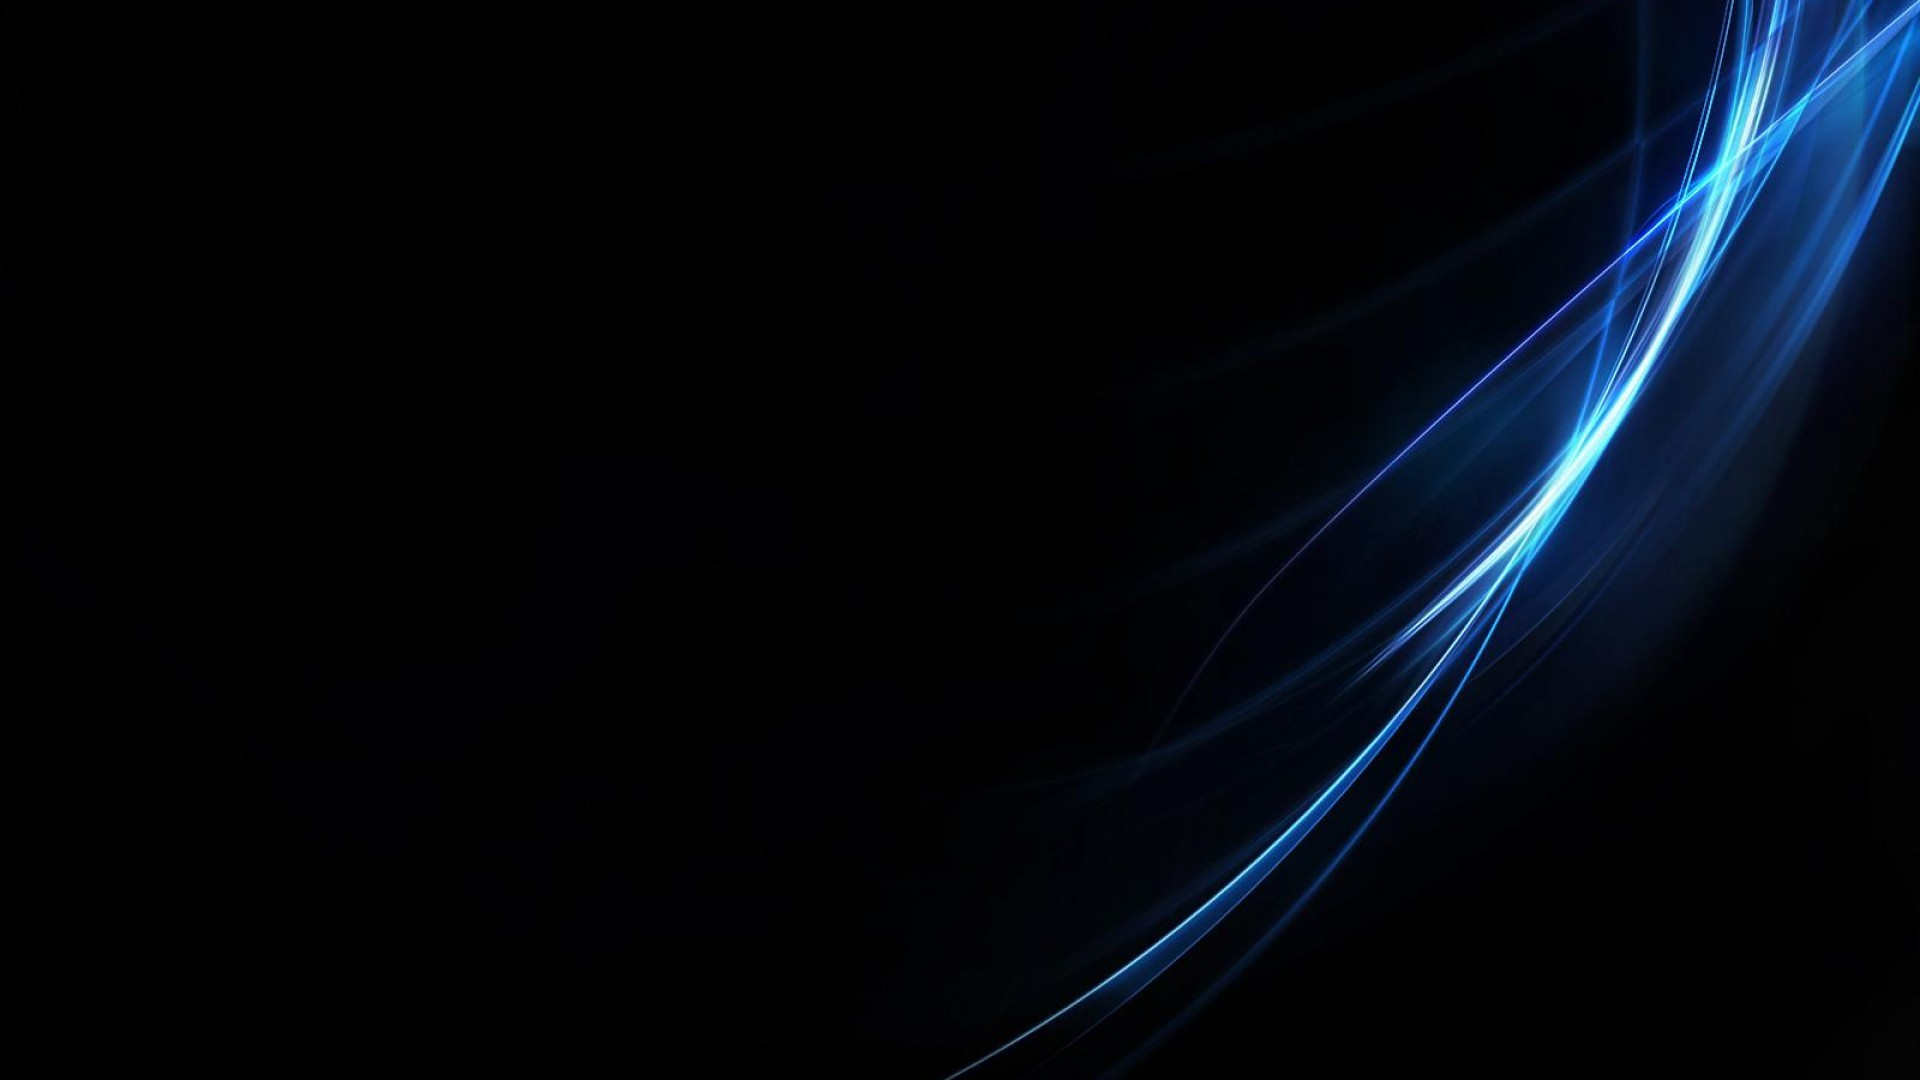 Blue abstract black wallpapers desktop 221826 | Black Background and ...